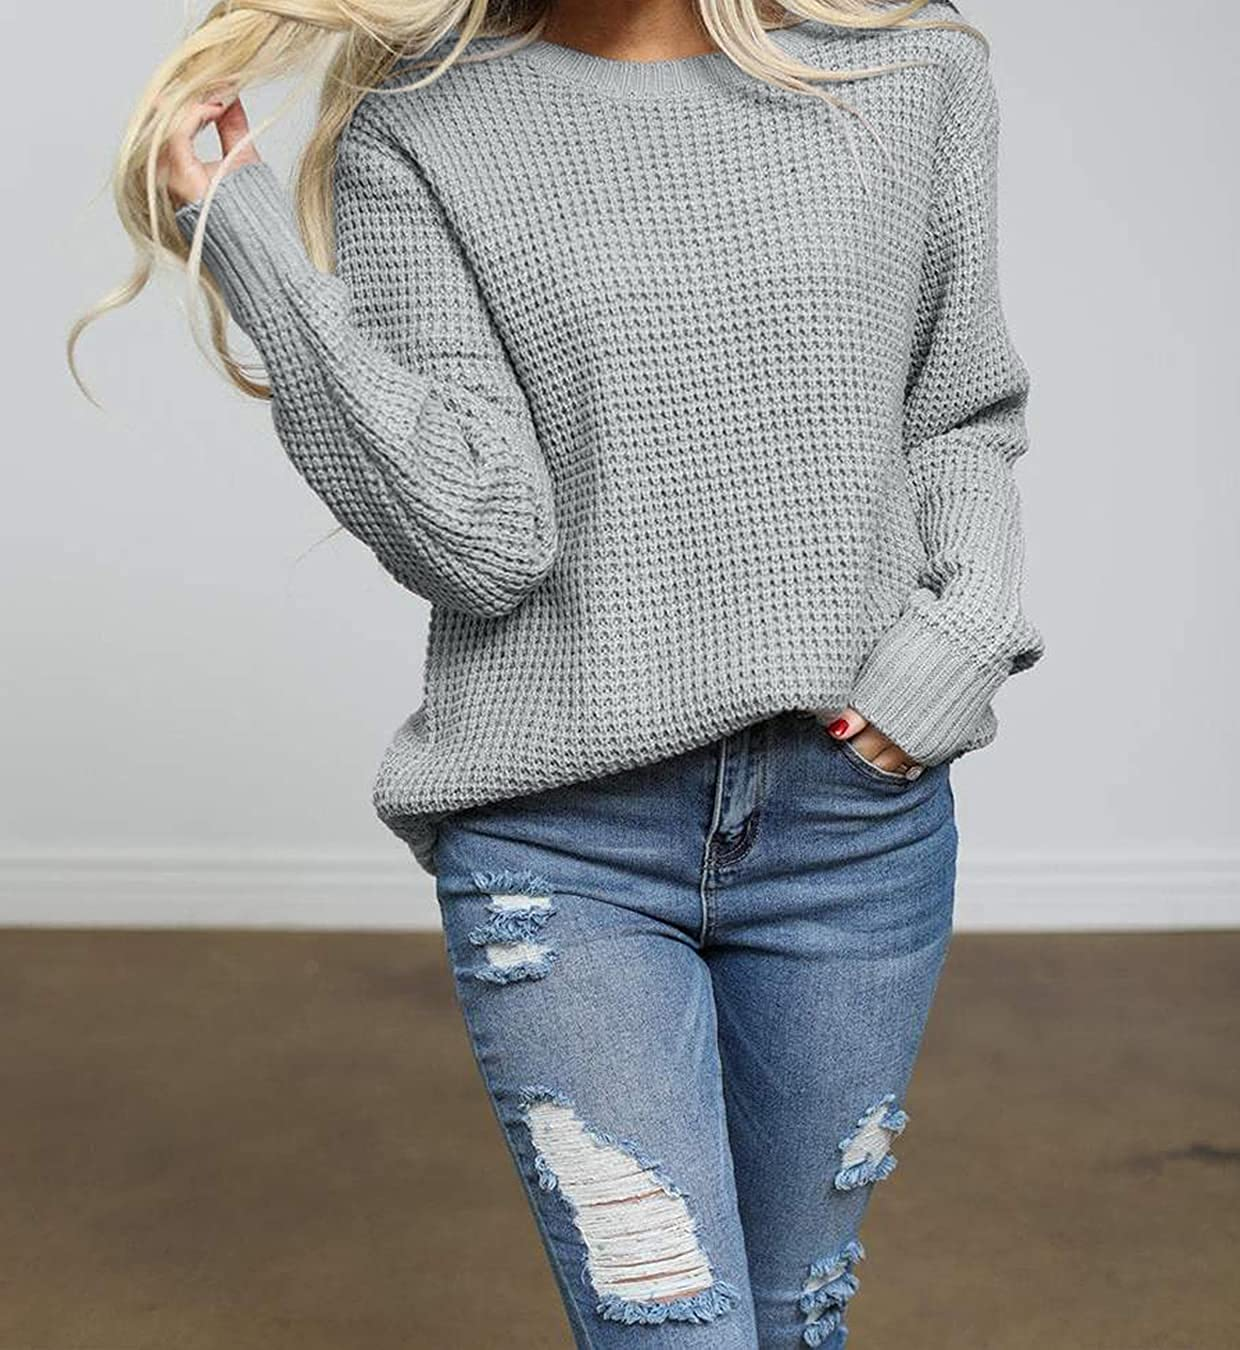 ZESICA Women's Long Sleeve Crew Neck Waffle Knit Casual Loose Oversized Pullover Sweater Jumper Tops